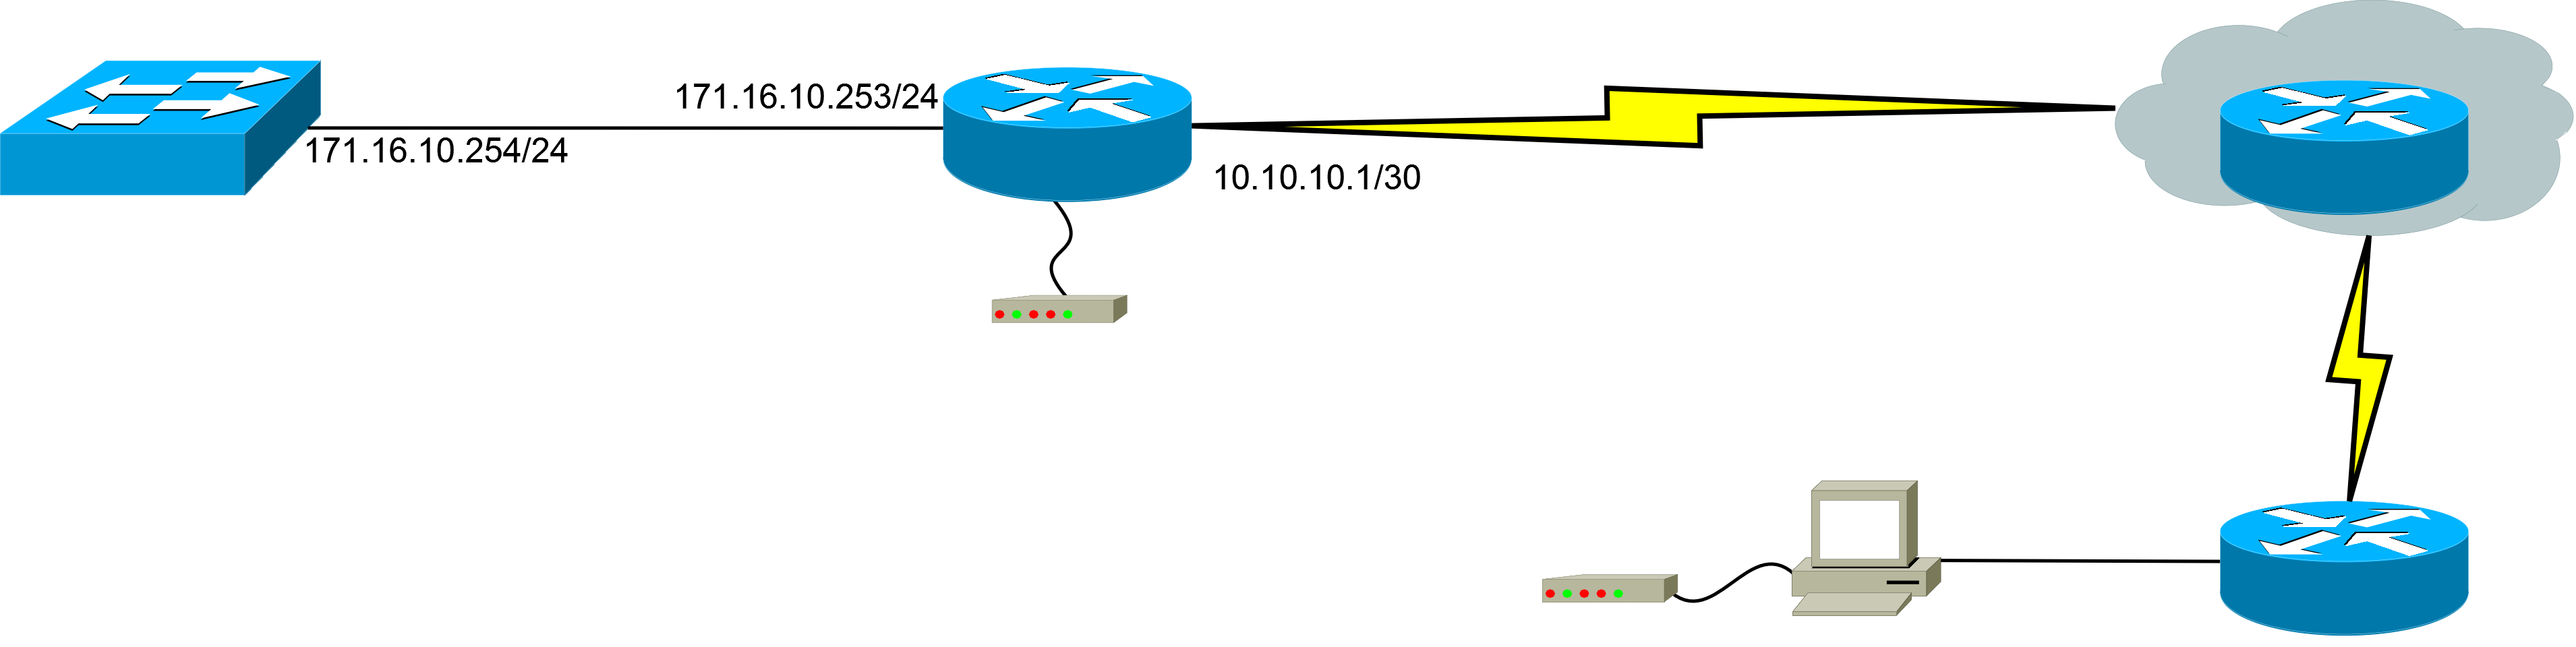 remote-site-example.png